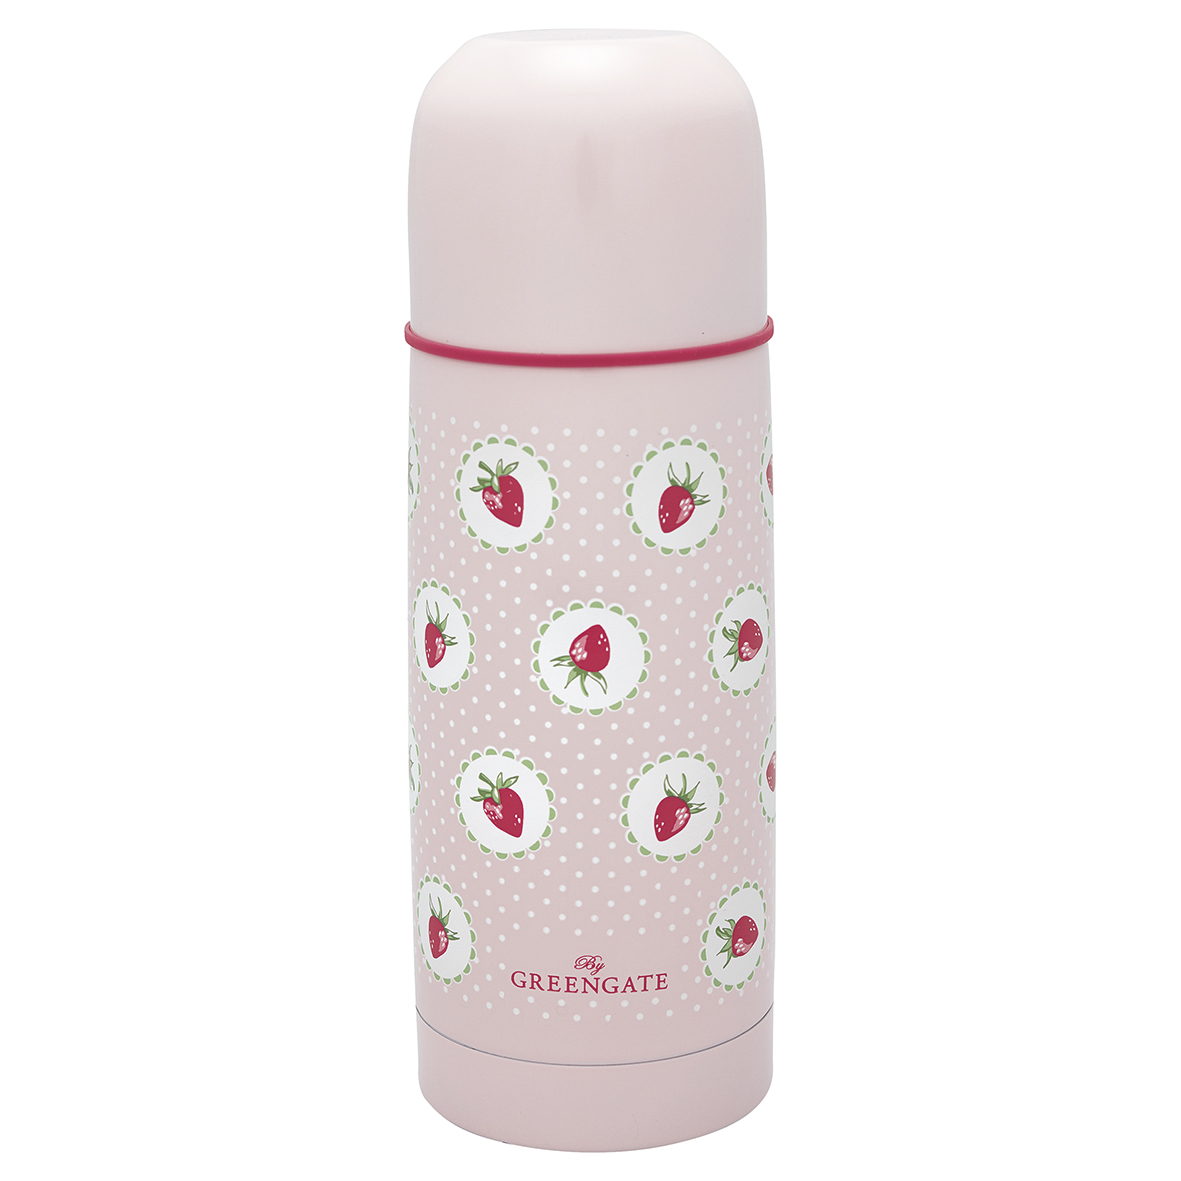 GreenGate Termos, Strawbery Pale Pink 300ml